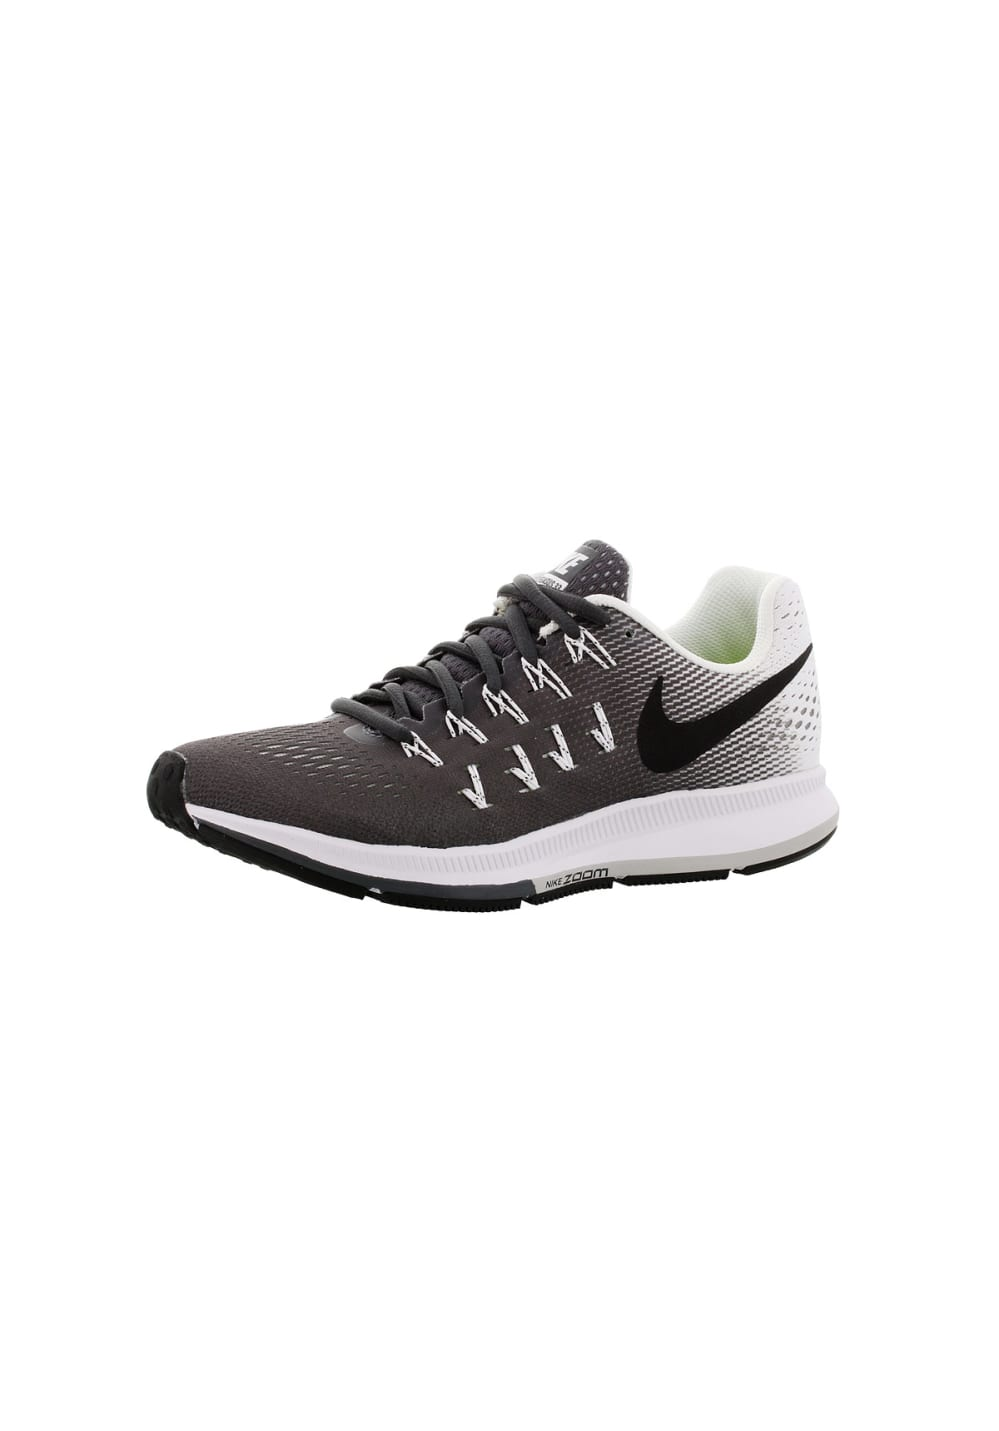 For Grey21run Nike 33 Shoes Air Zoom Pegasus Women Running drCxoBeW